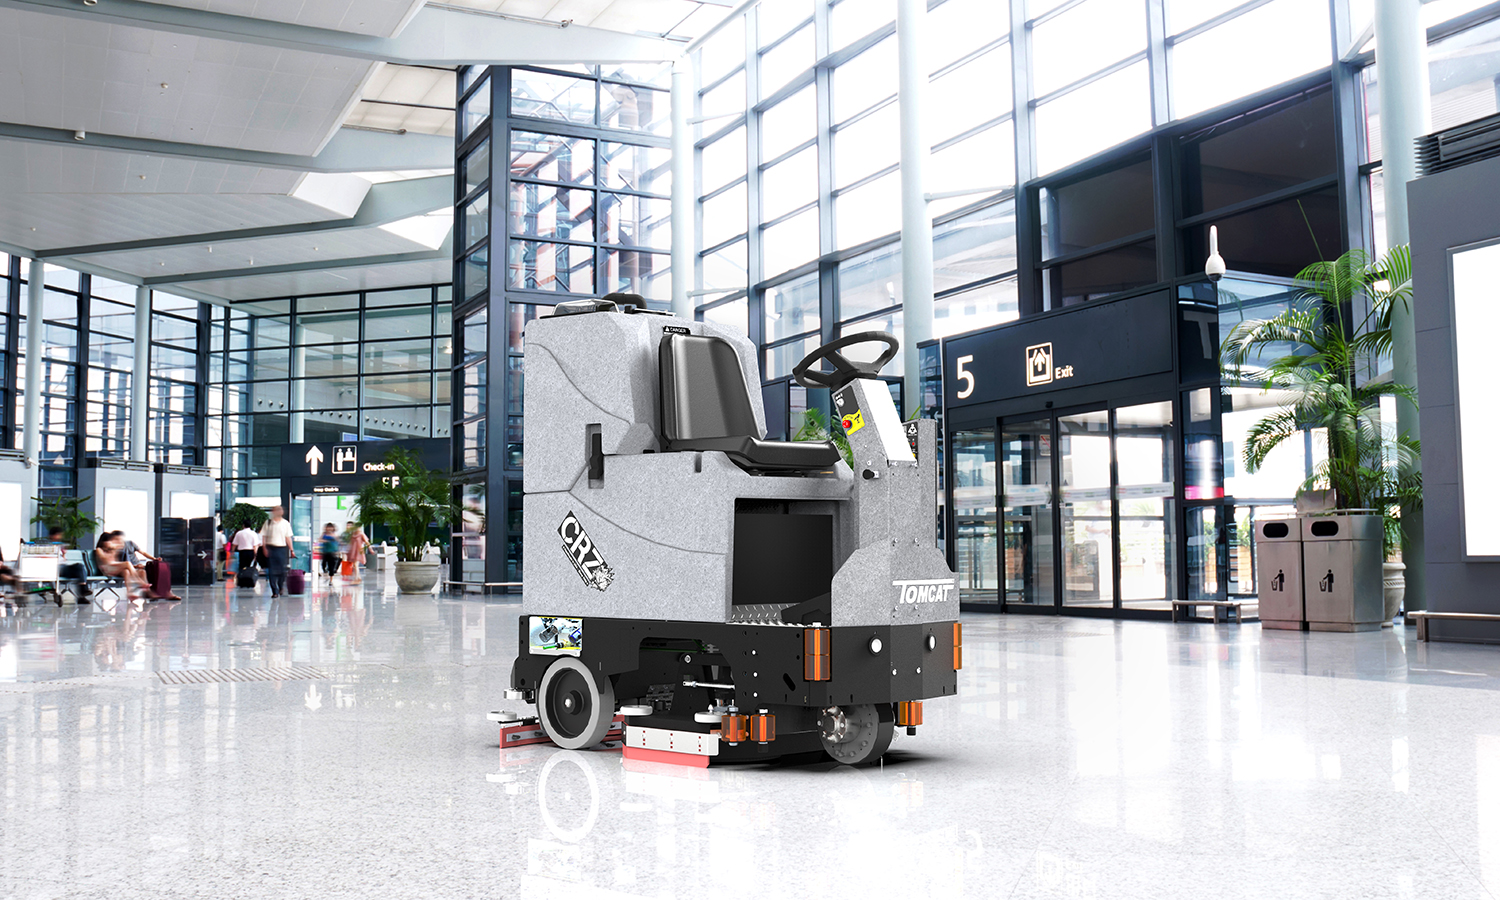 Tomcat Floor Scrubber demonstrated at an airport